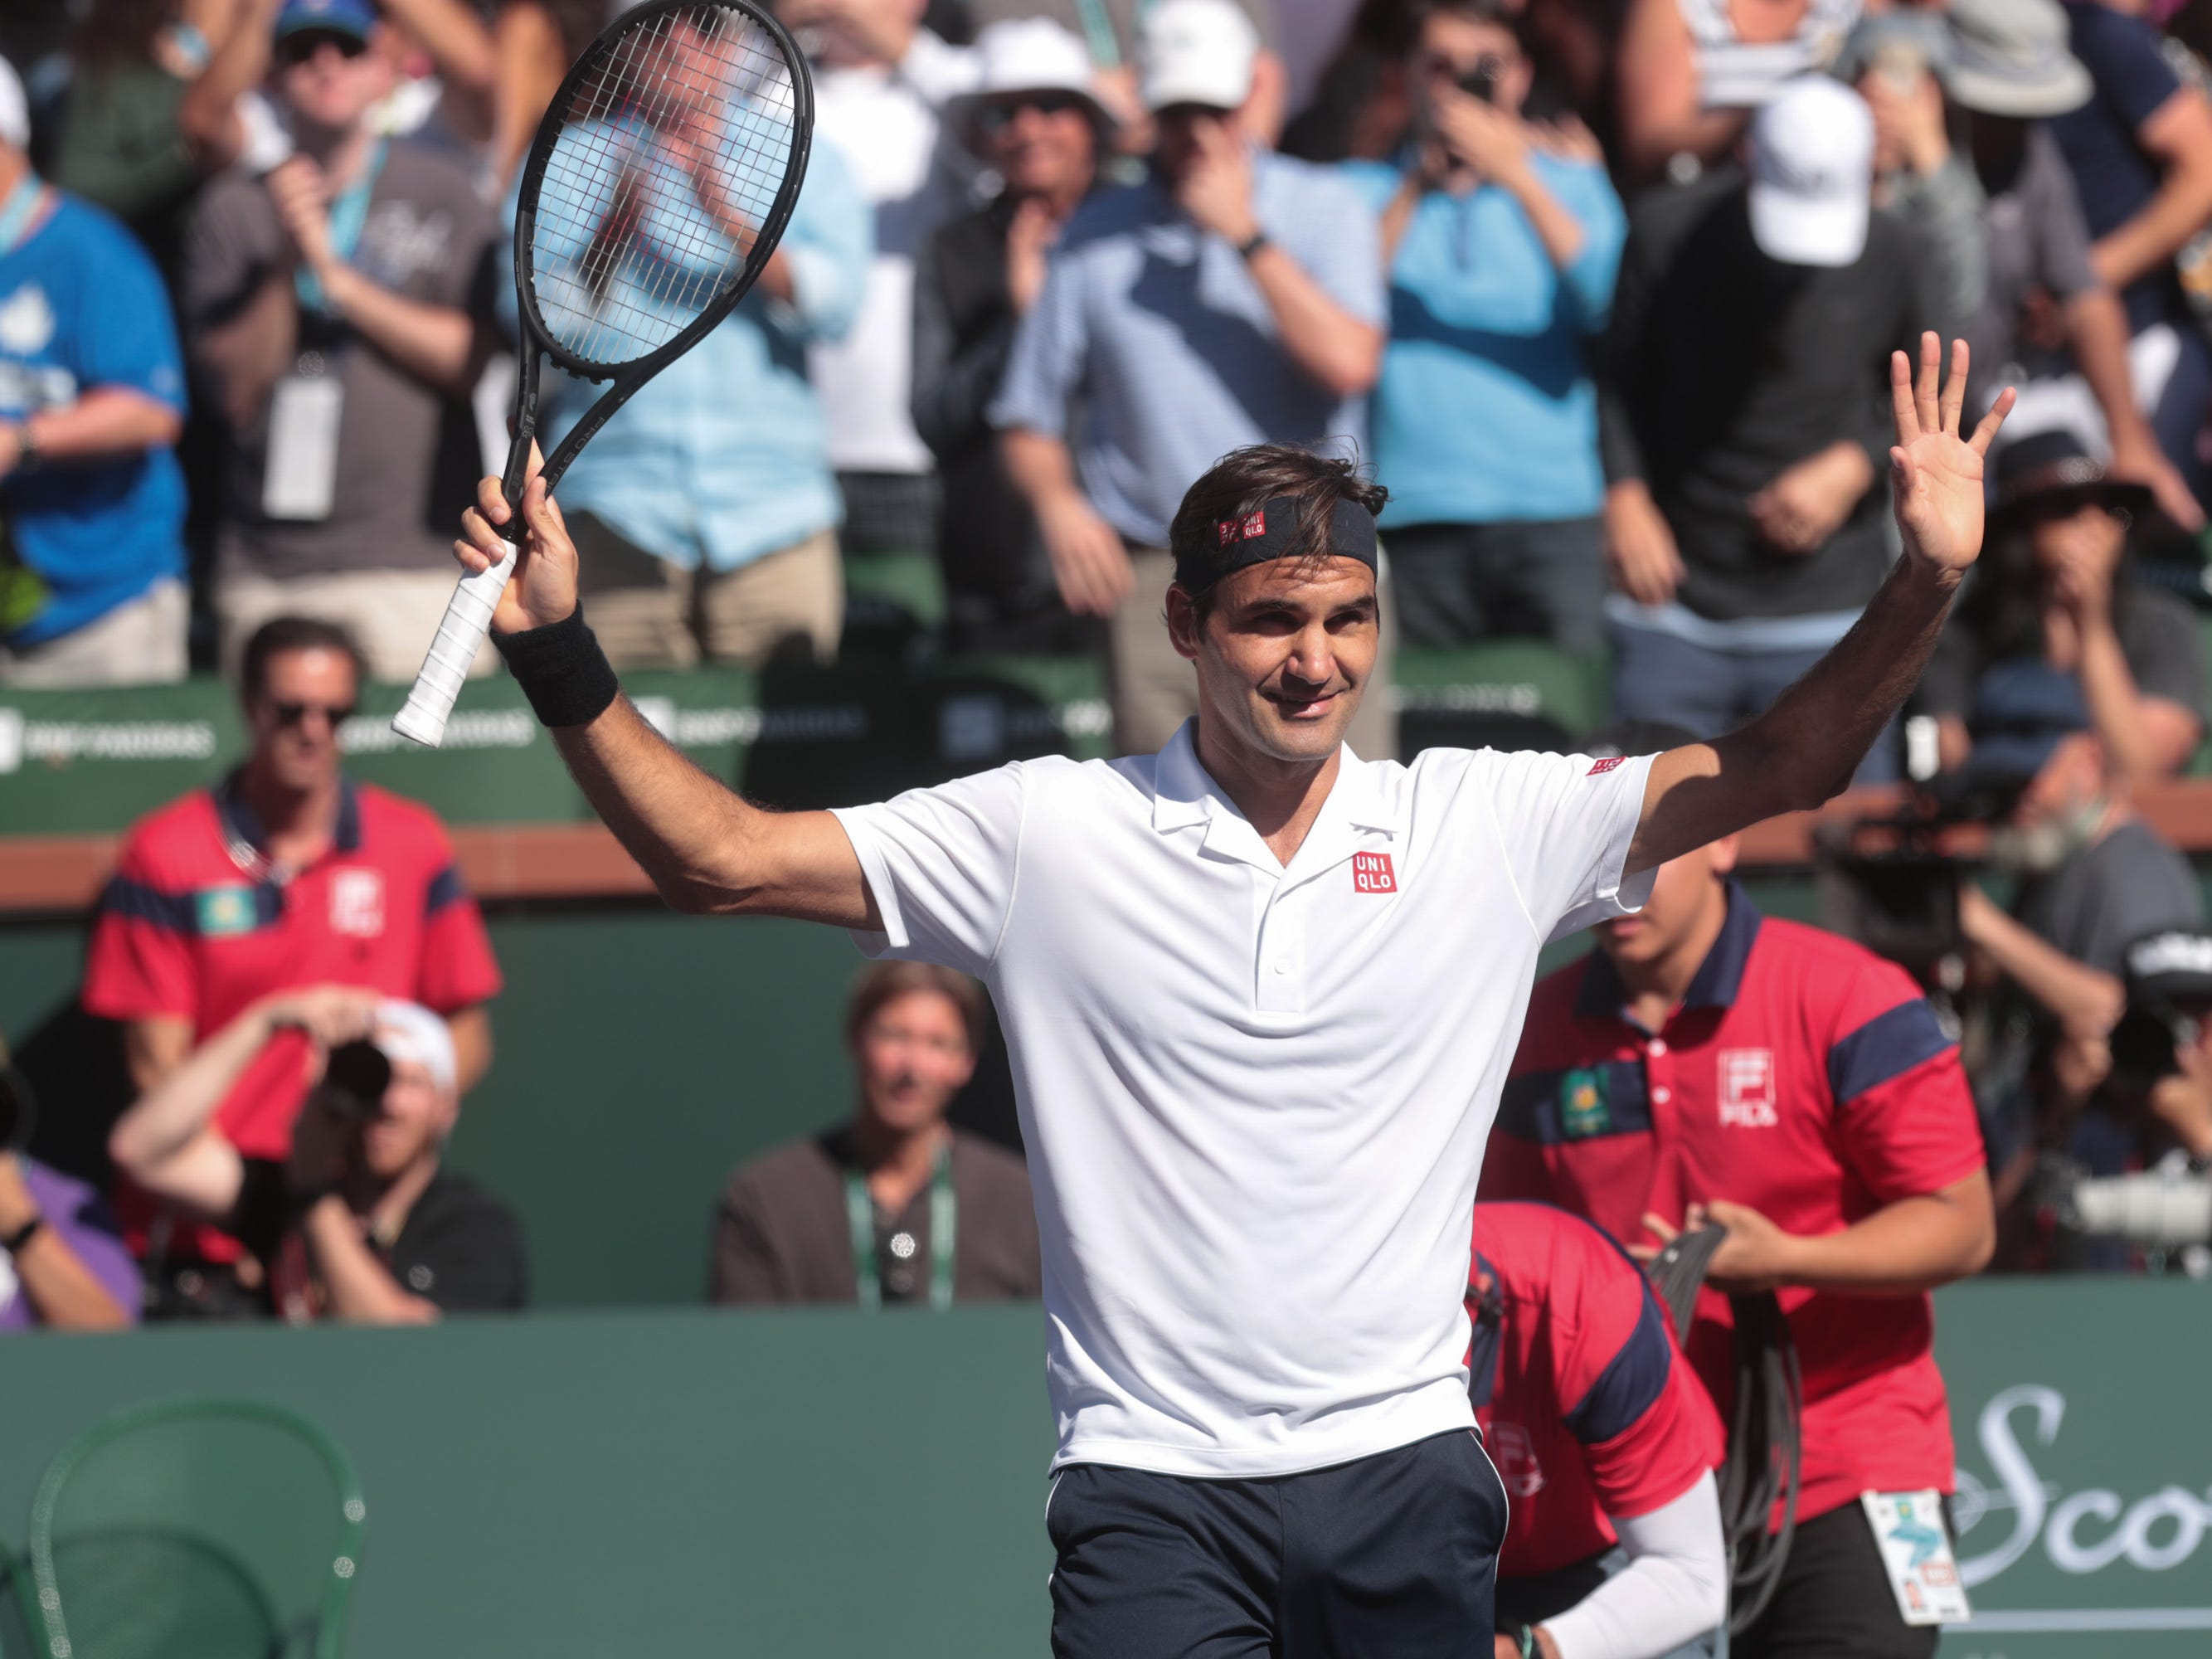 Roger Federer defeats Kyle Edmund at the BNP Paribas Open in Indian Wells, Calif., March 13, 2019.